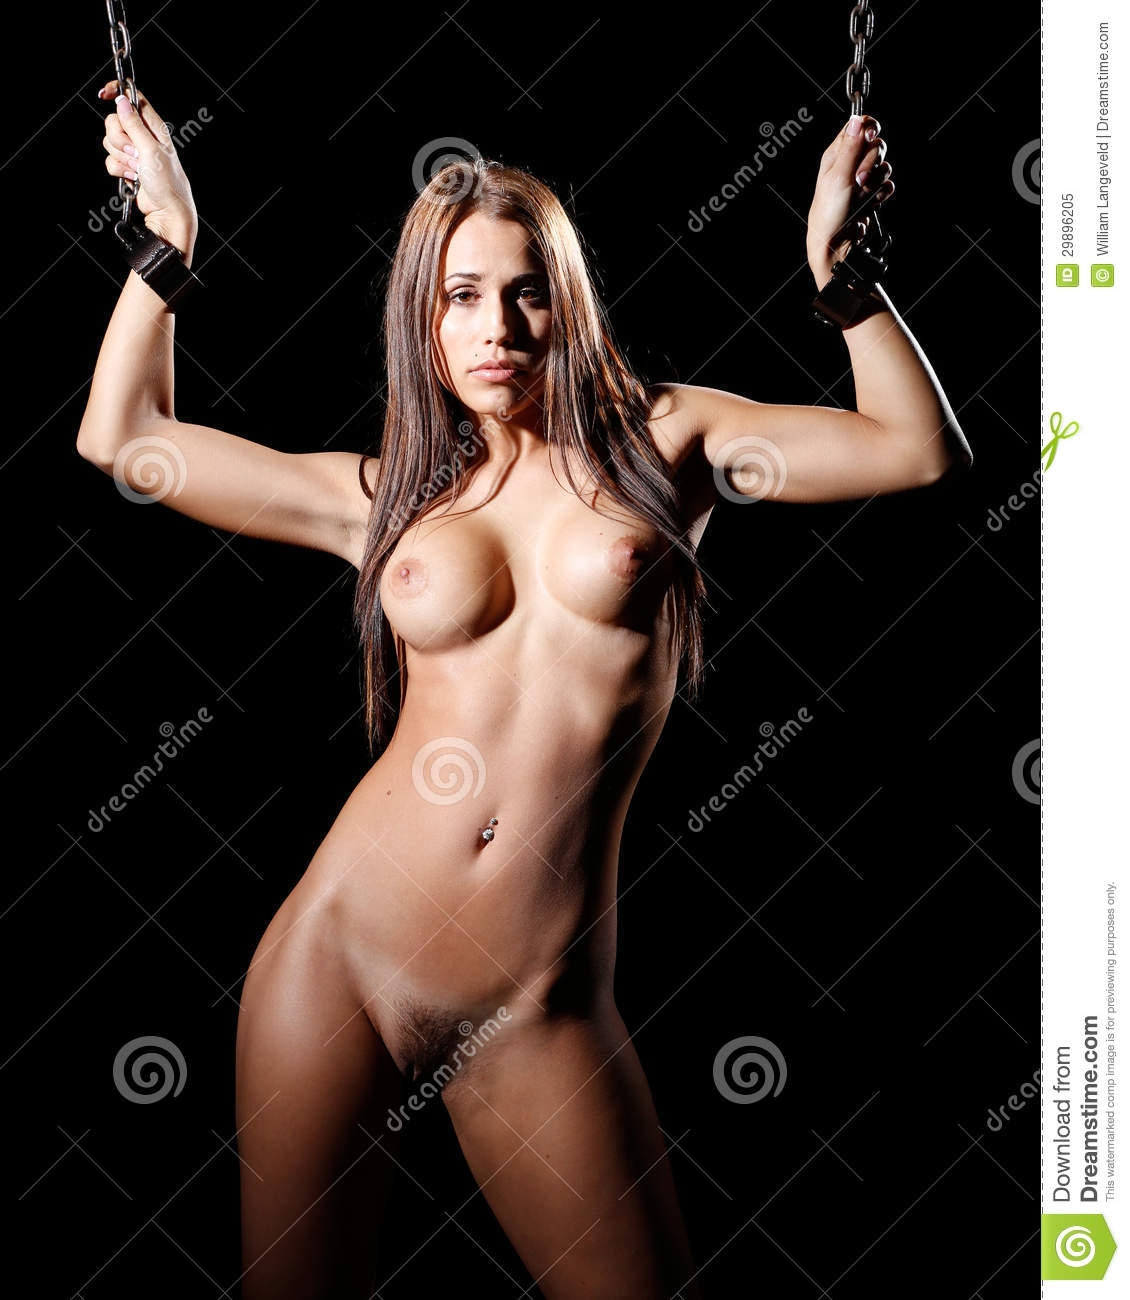 Bondage Art Style With Nude Or Naked Woman Tied Up With -7493